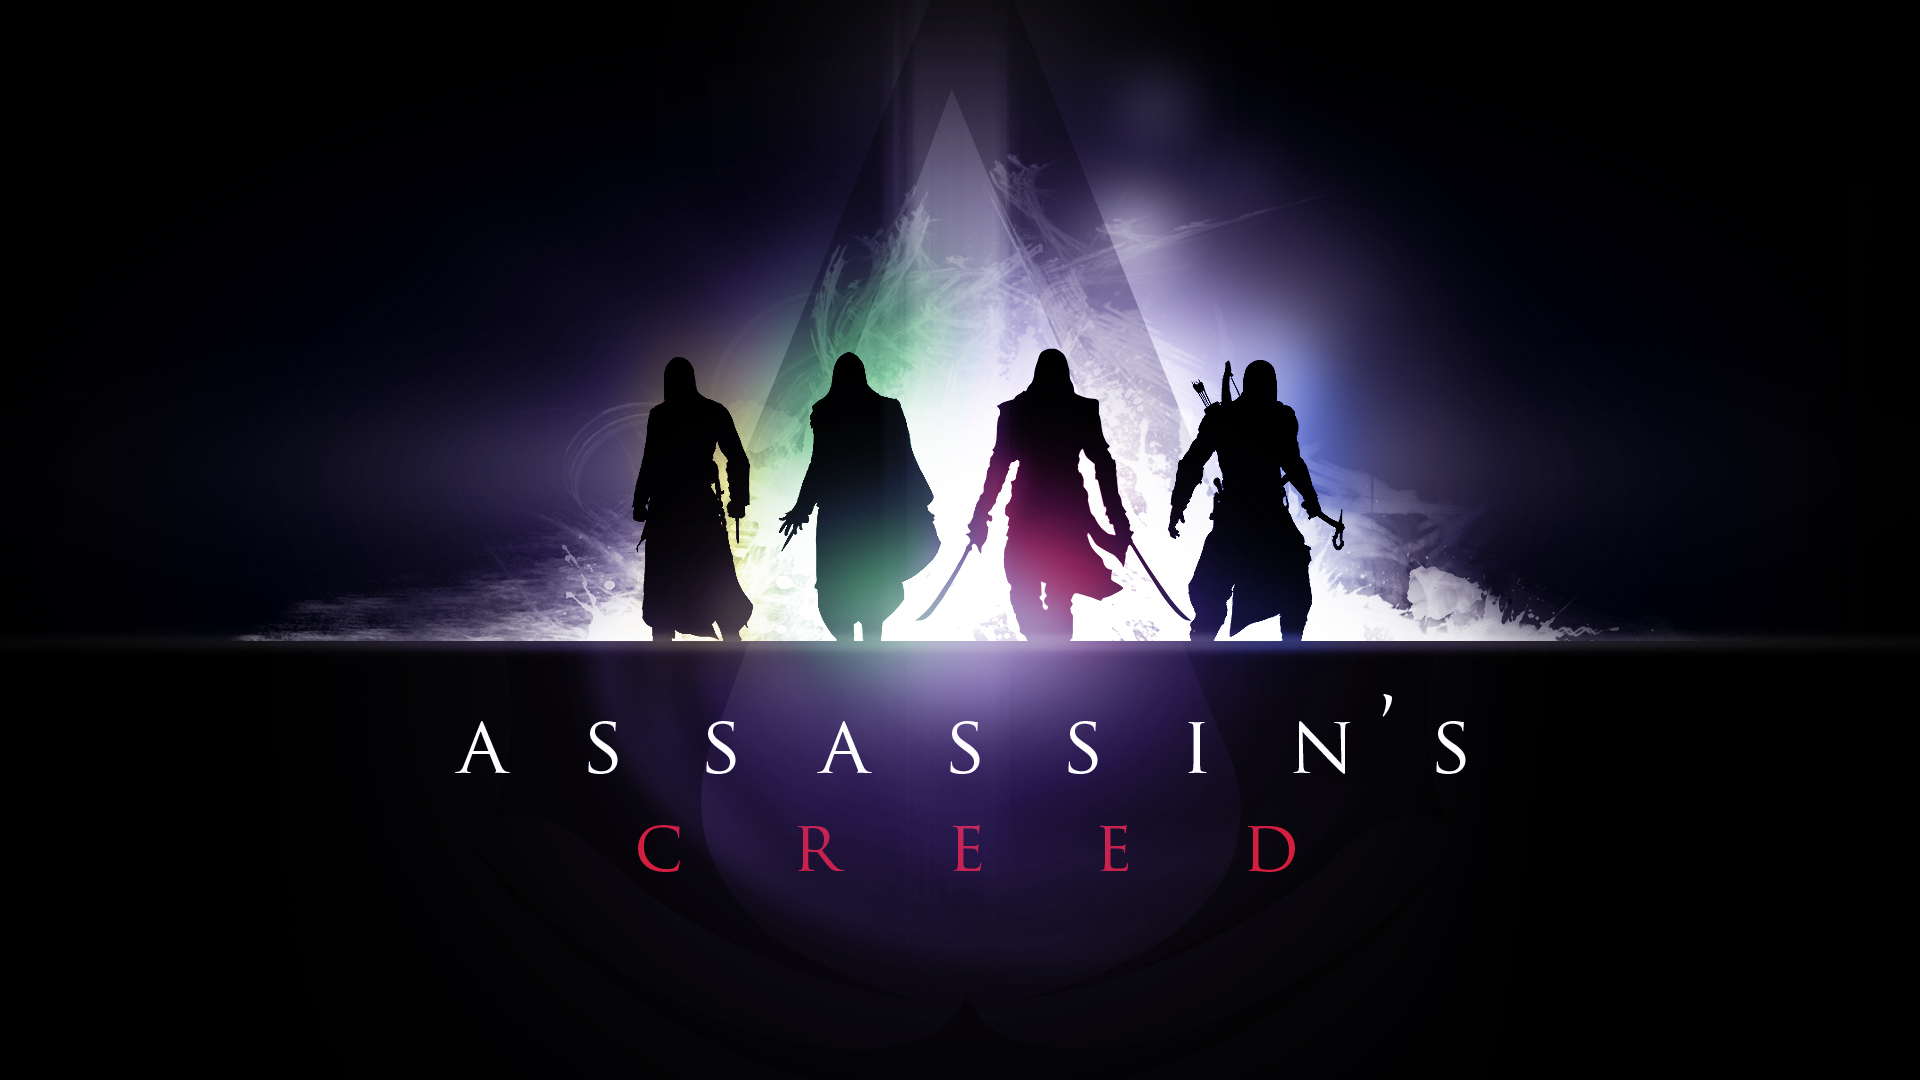 Symphony Of Time Assassin S Creed Wallpaper By Rocklou On Deviantart